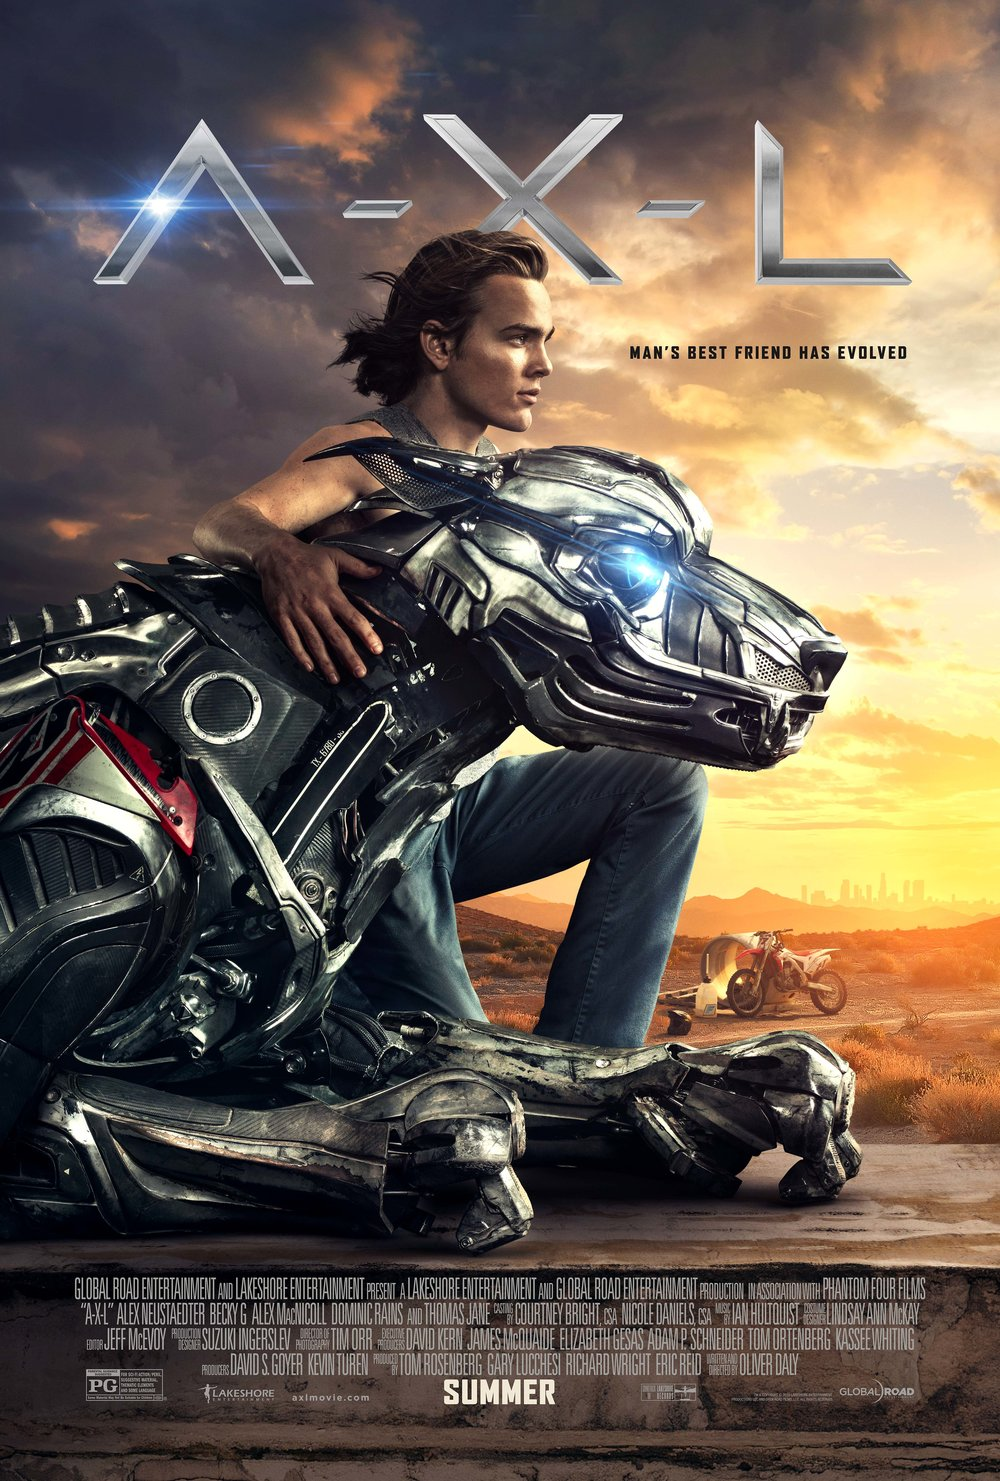 trailer-for-the-80s-inspired-sci-fi-film-axl-follows-a-boy-and-his-robot-dog2